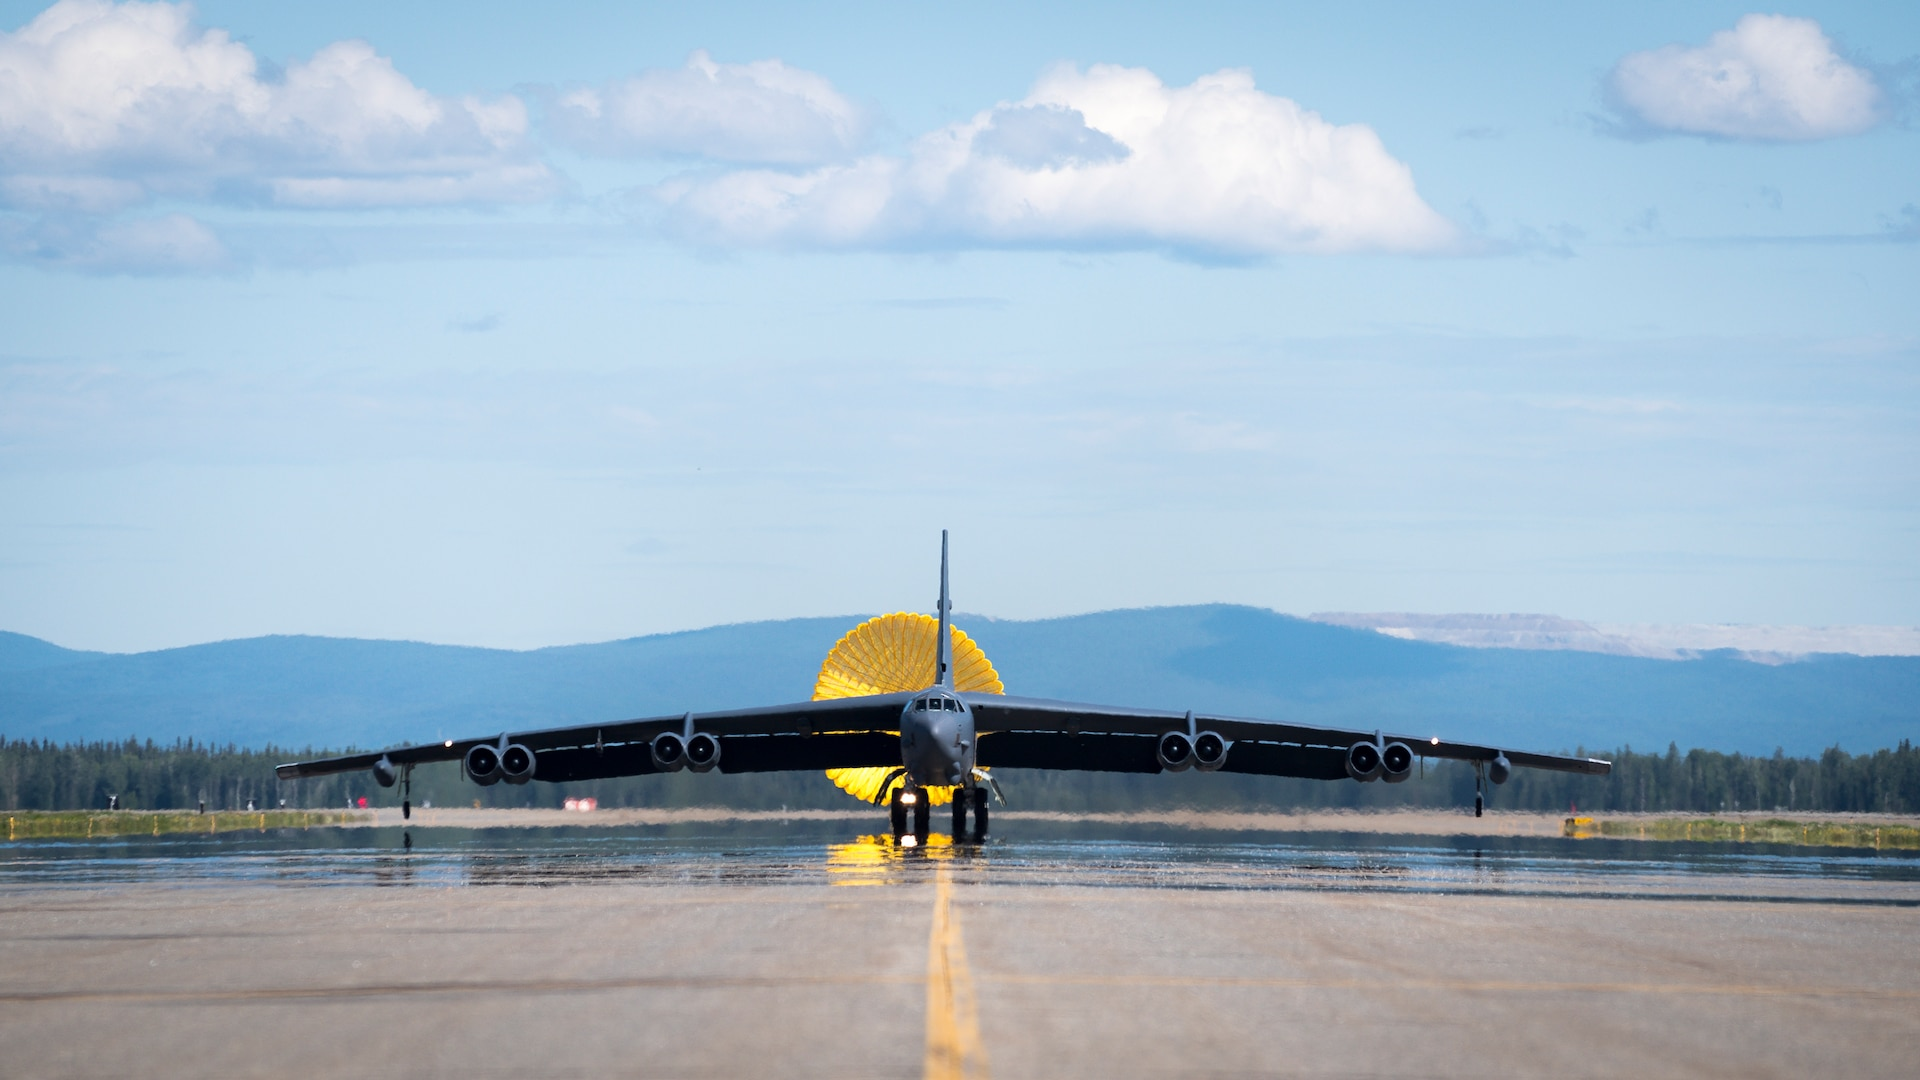 A B-52H Stratofortress deployed from Barksdale Air Force Base, La., taxis down the flightline at Eielson Air Force Base, Alaska, after conducting a Bomber Task Force mission over the Sea of Japan, June 17, 2020. Bomber Task Force missions help maintain global stability and security while enabling units to become familiar with operations in different regions. (U.S. Air Force photo by Senior Airman Lillian Miller)